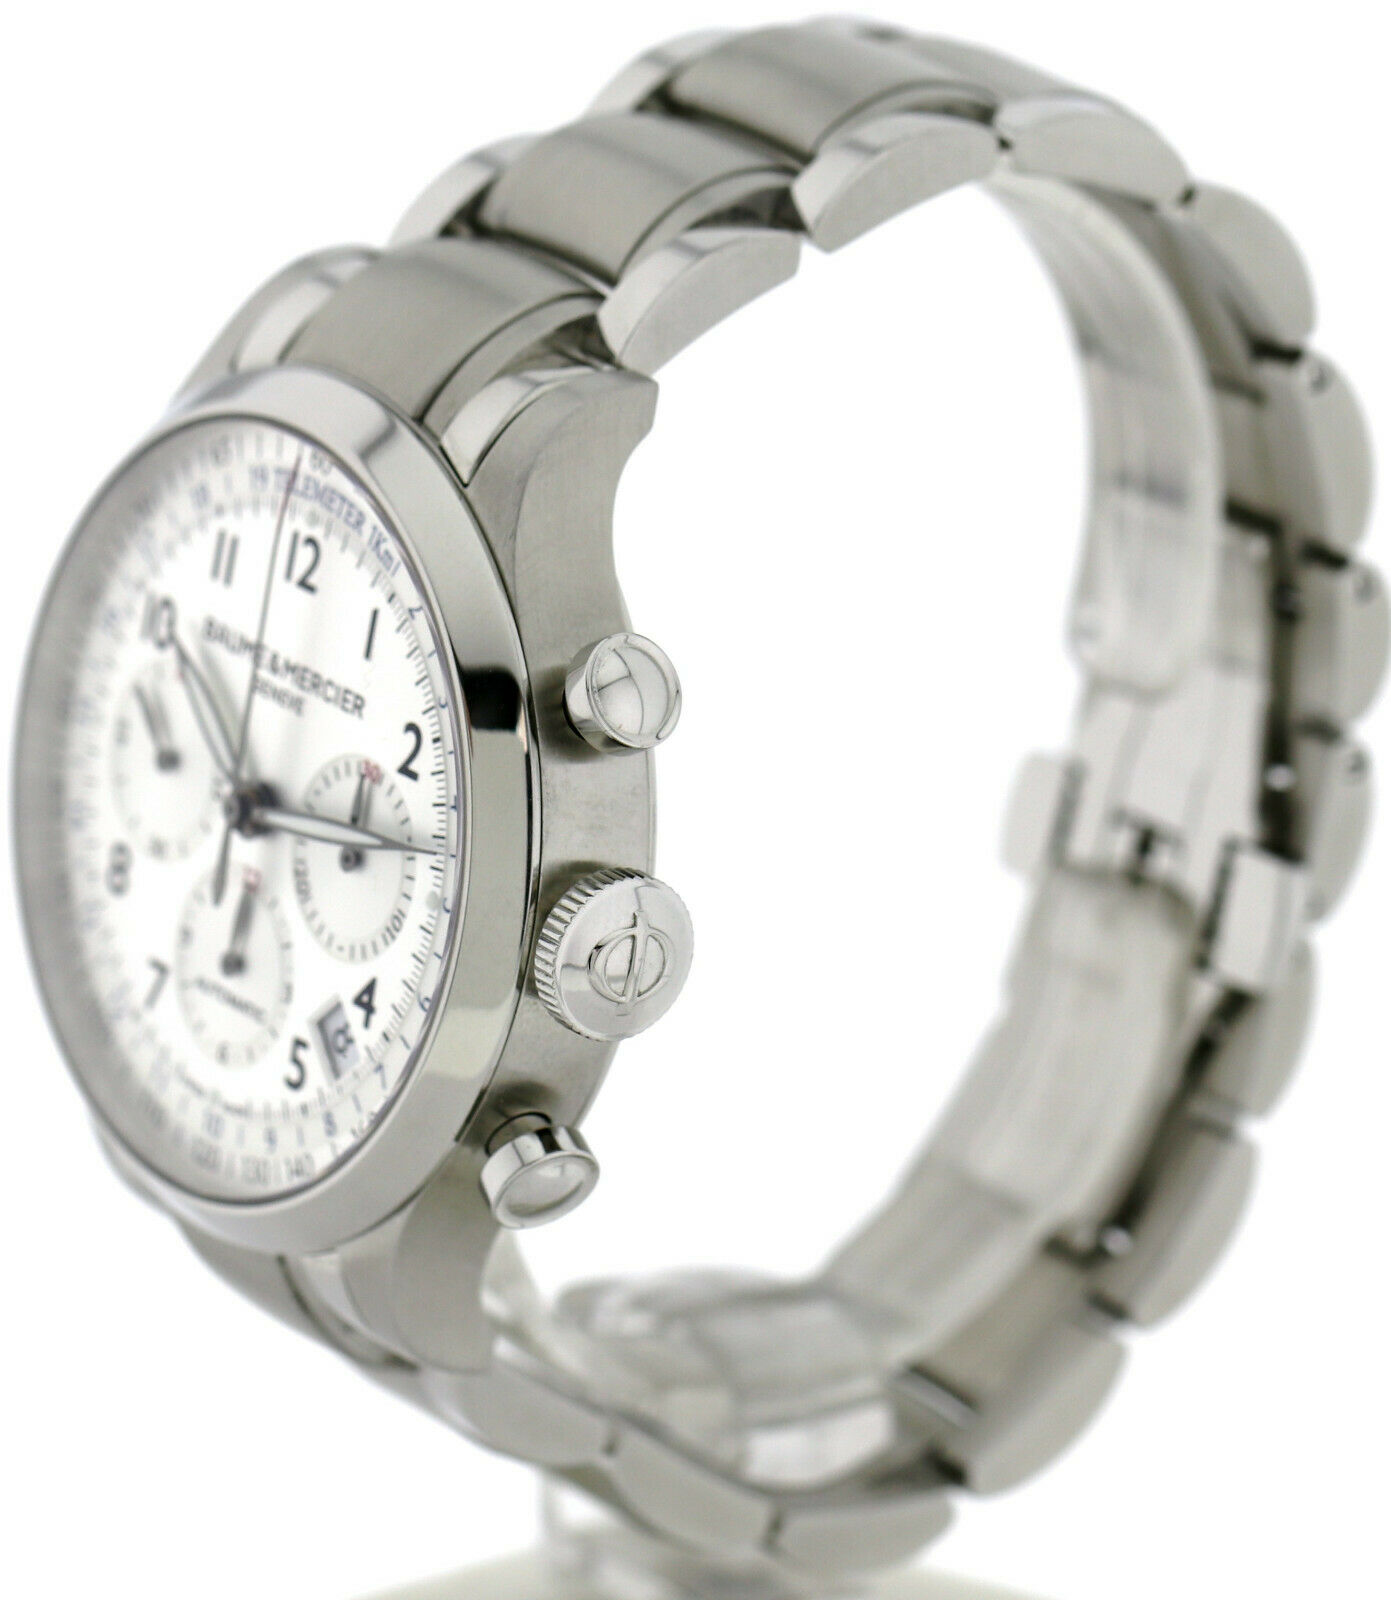 BAUME  MERCIER CHRONOGRAPH REF65716 BerlinWatches